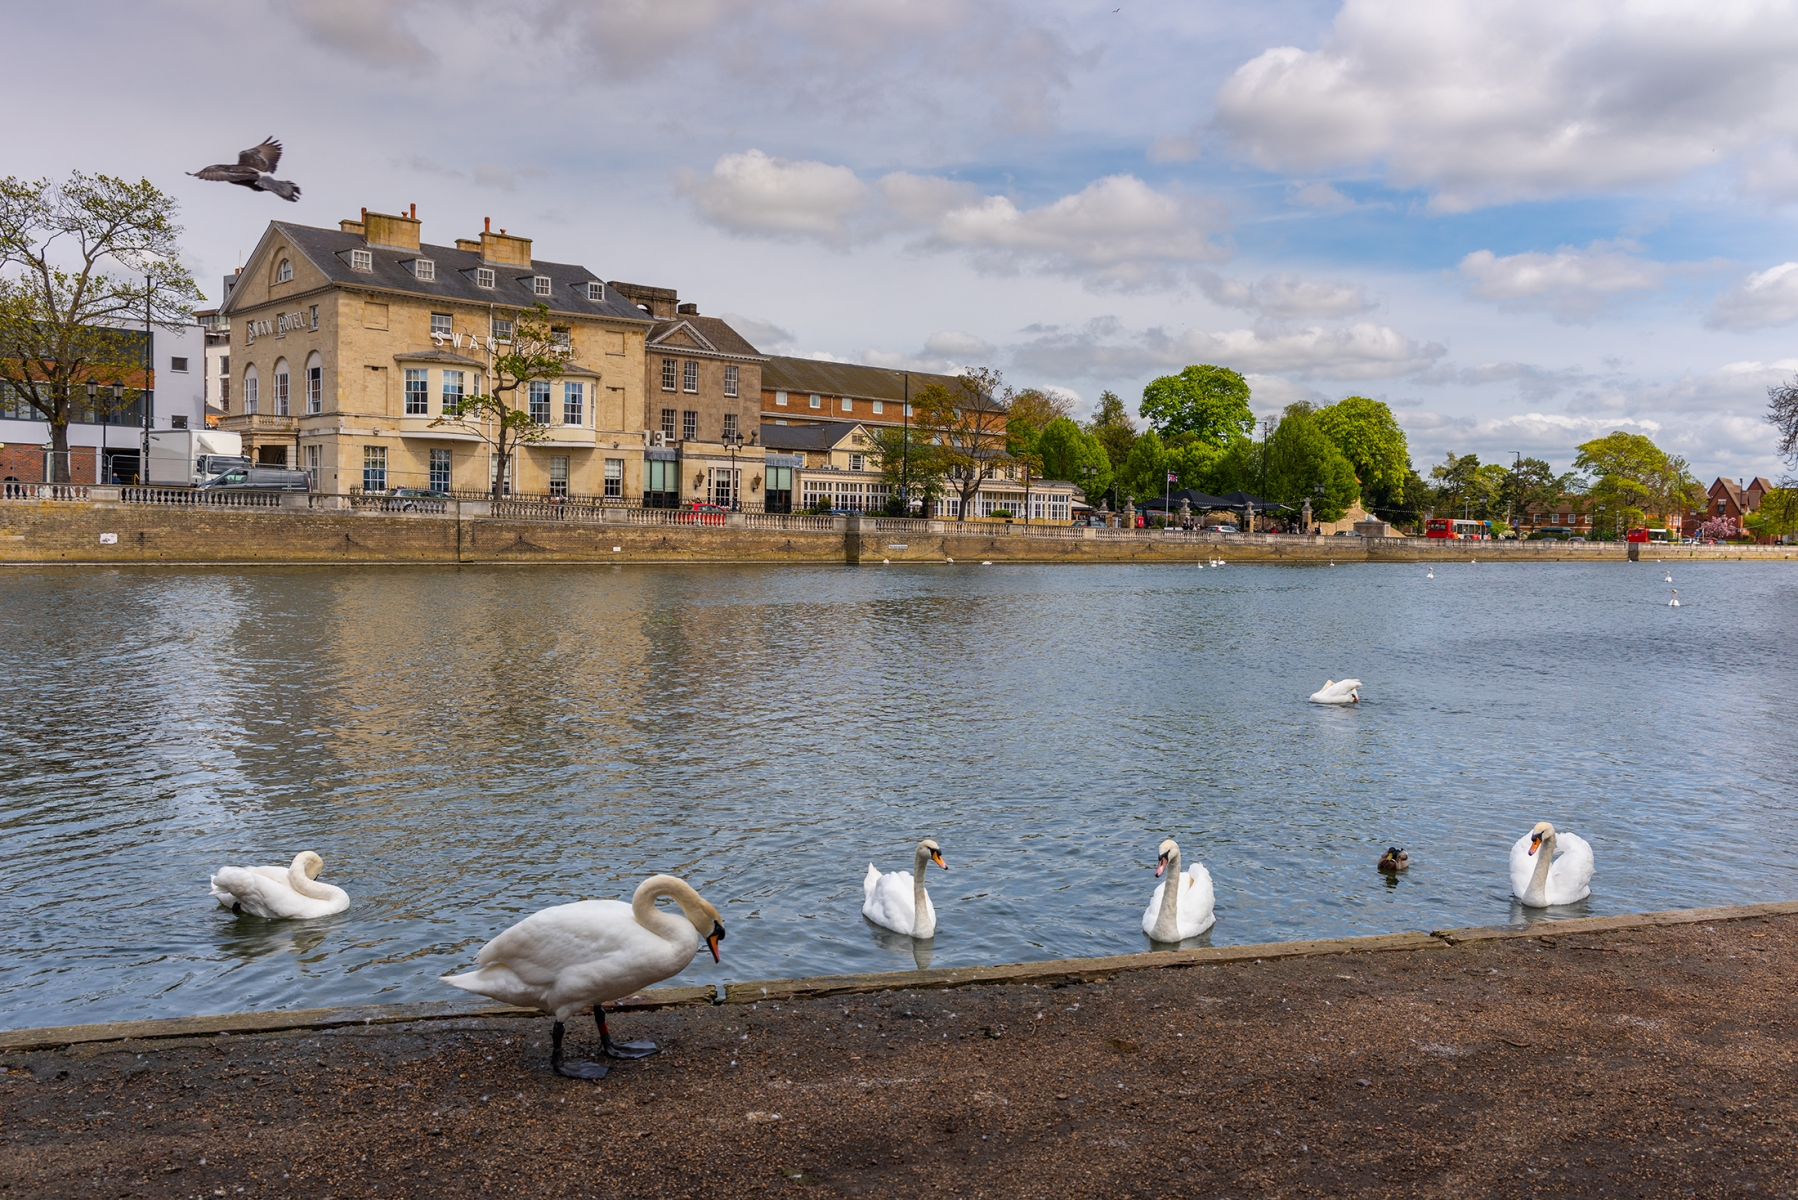 Views of the swans on and around The Embankment and River Great Ouse, Bedford